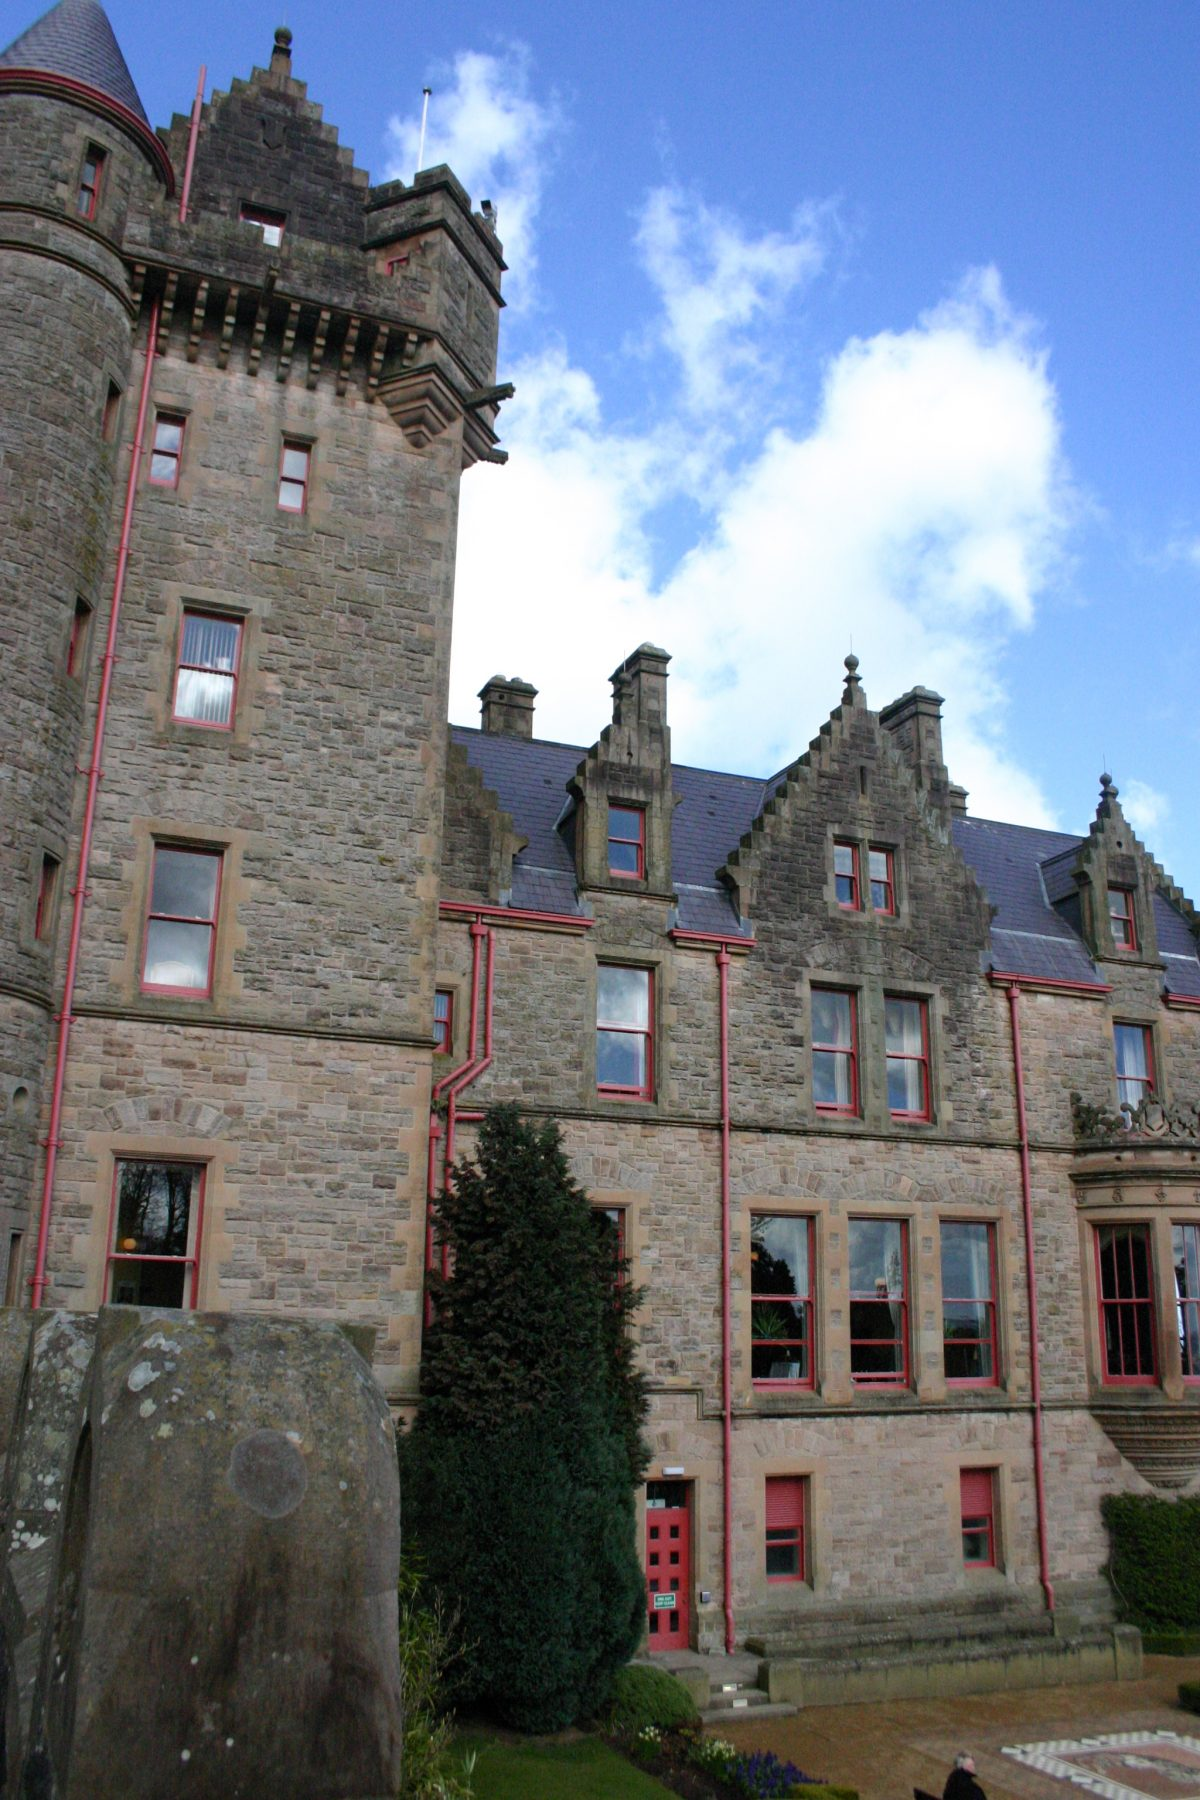 Belfast castle Genvessel Wikipedia Commons - 10 Castles That You Should Visit In Ireland